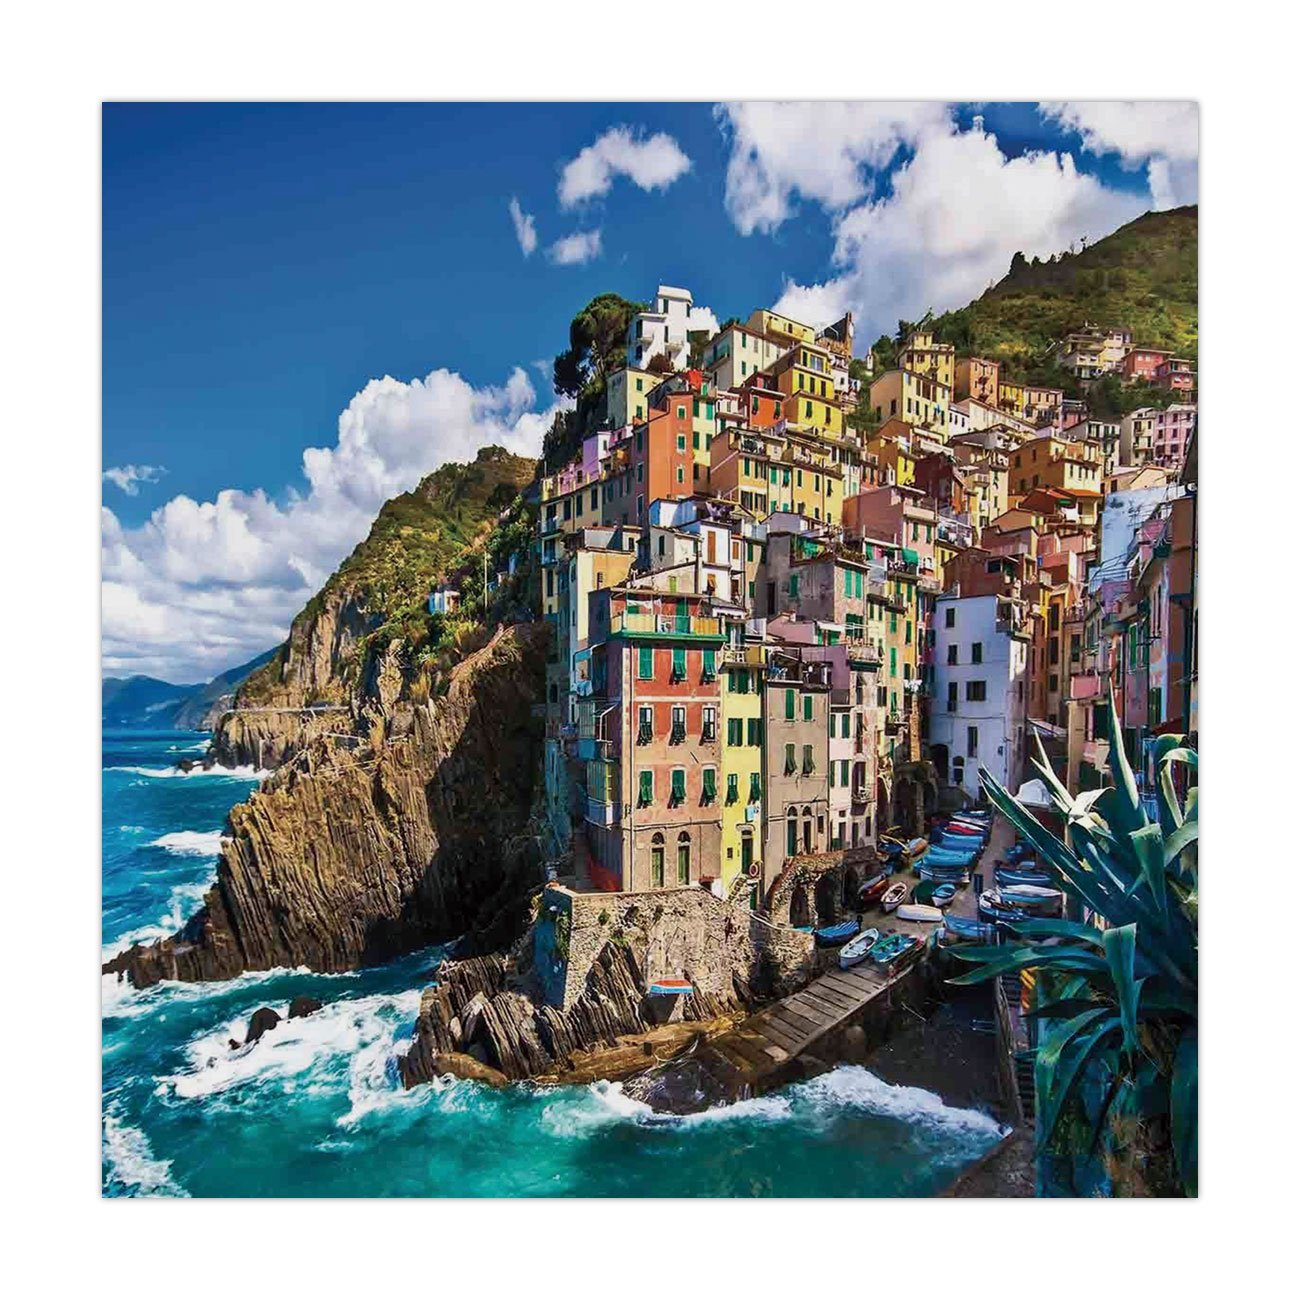 iPrint Polyester Square Tablecloth,Farm House Decor,Italian Mediterranean House by Cliffs Dramatic Weather Sea Cinque Terre Print,Multi,Dining Room Kitchen Picnic Table Cloth Cover,for Outdoor Indoor